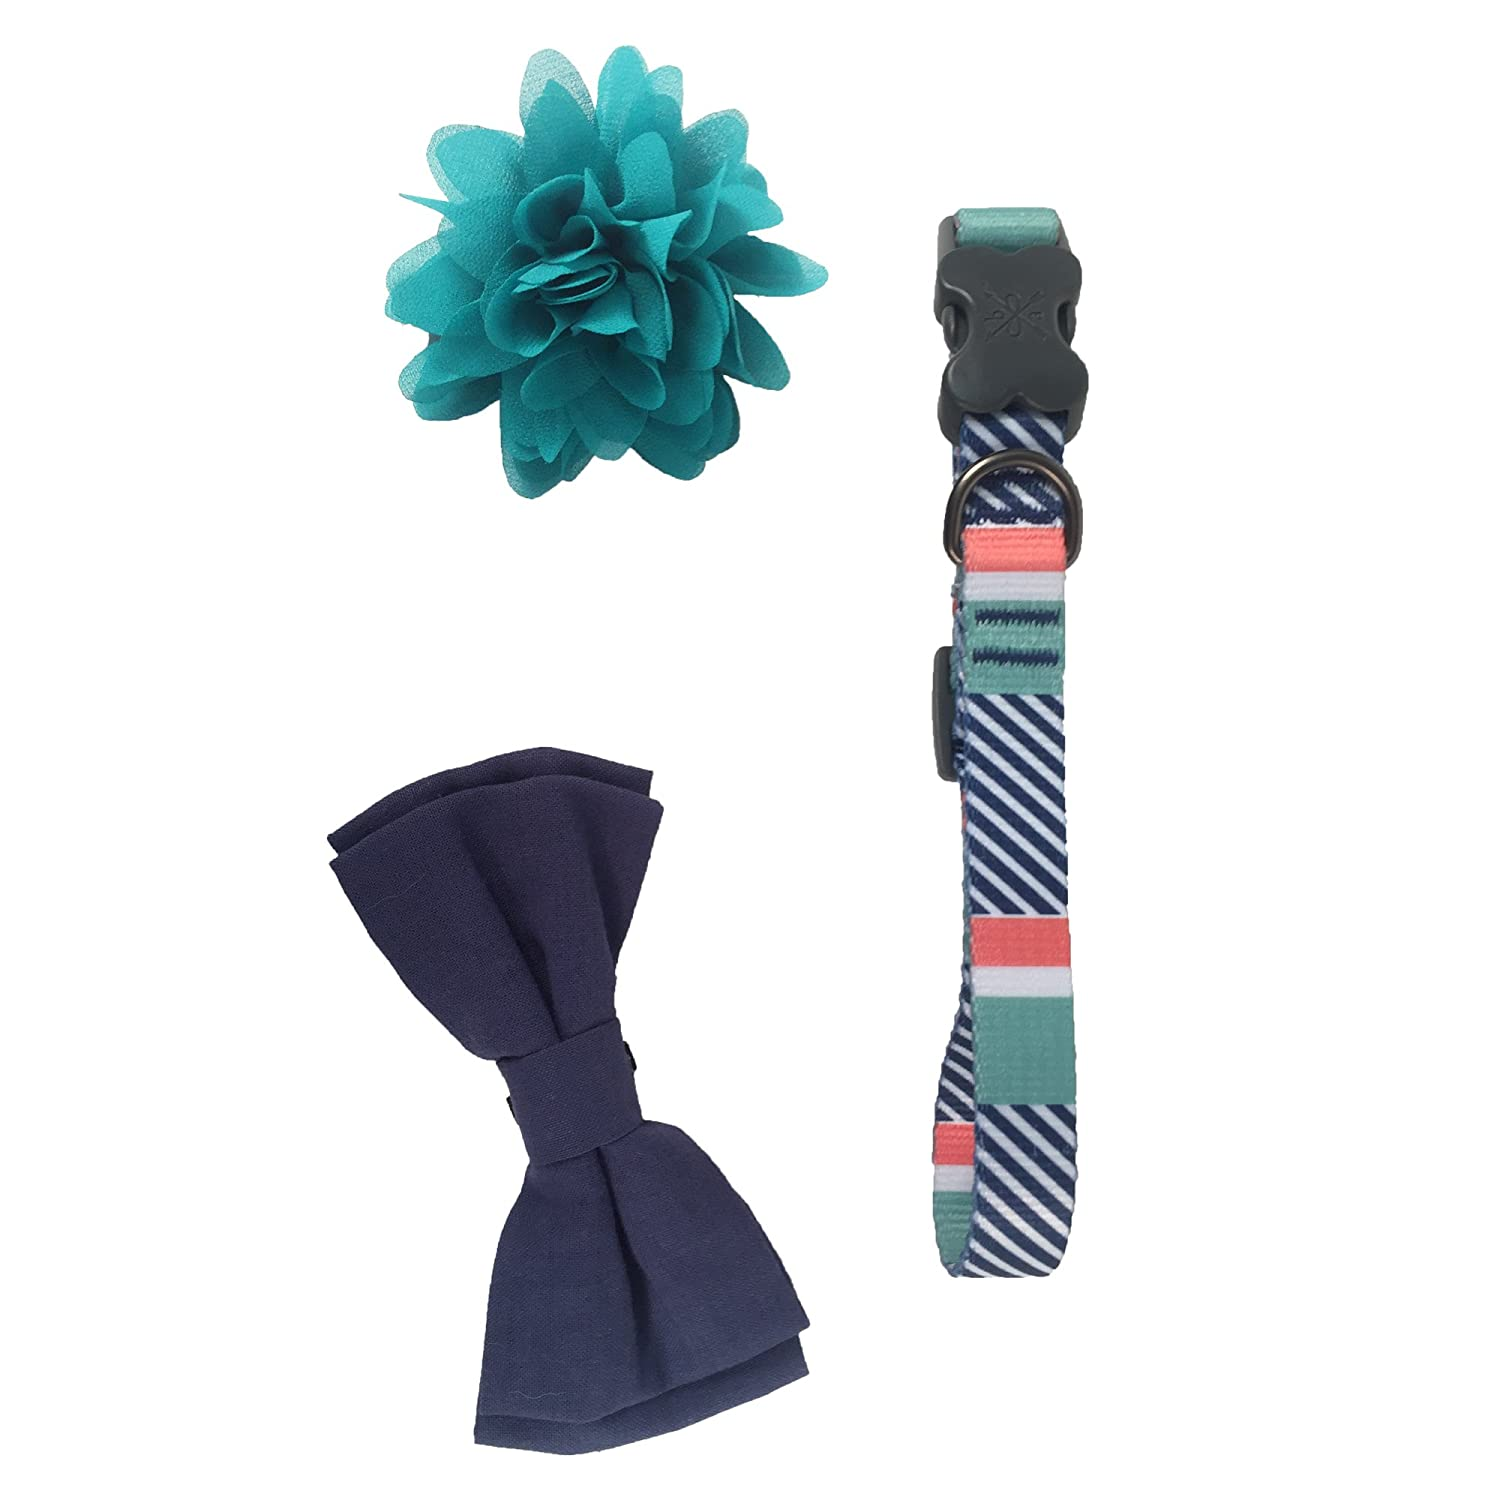 Bow & Arrow Pet Soiree Fancy Dog Collar With 1 Bow Tie Slide and 1 Flower Slide, Medium, Mint